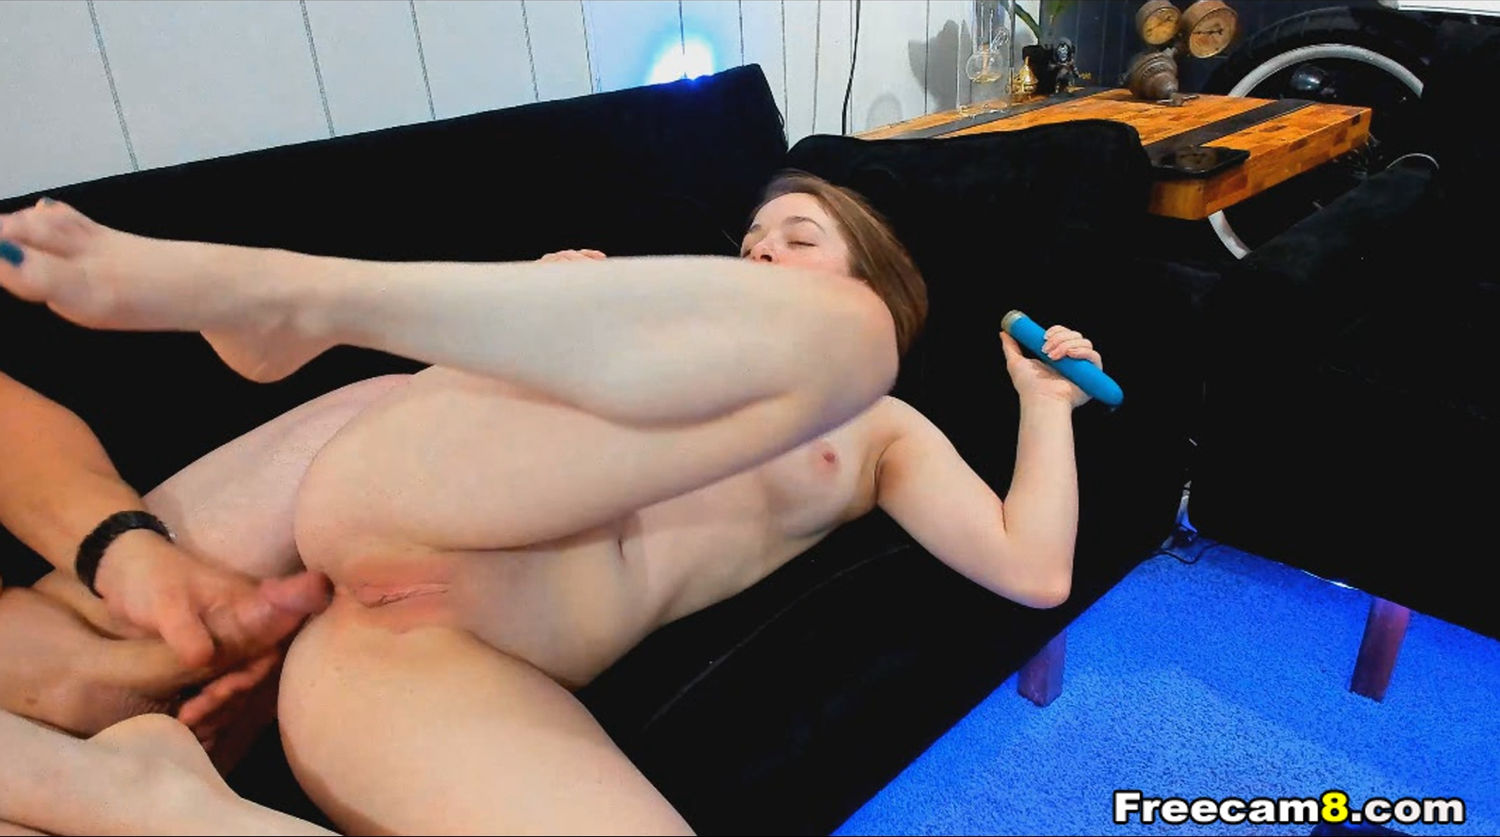 Petite Babe Gets Her Tight Pussy Pounded